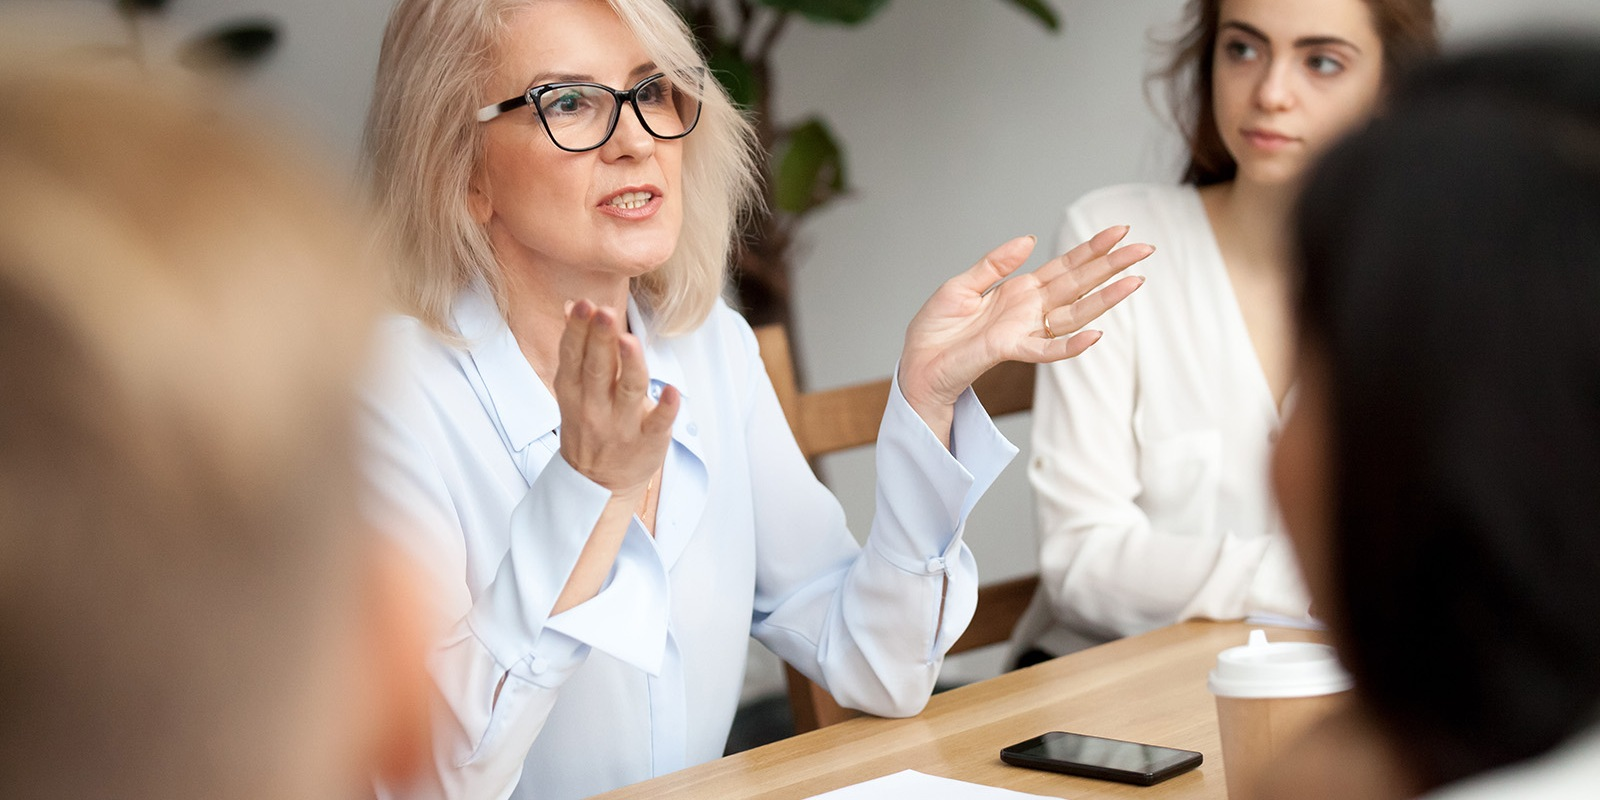 Mature woman in meeting